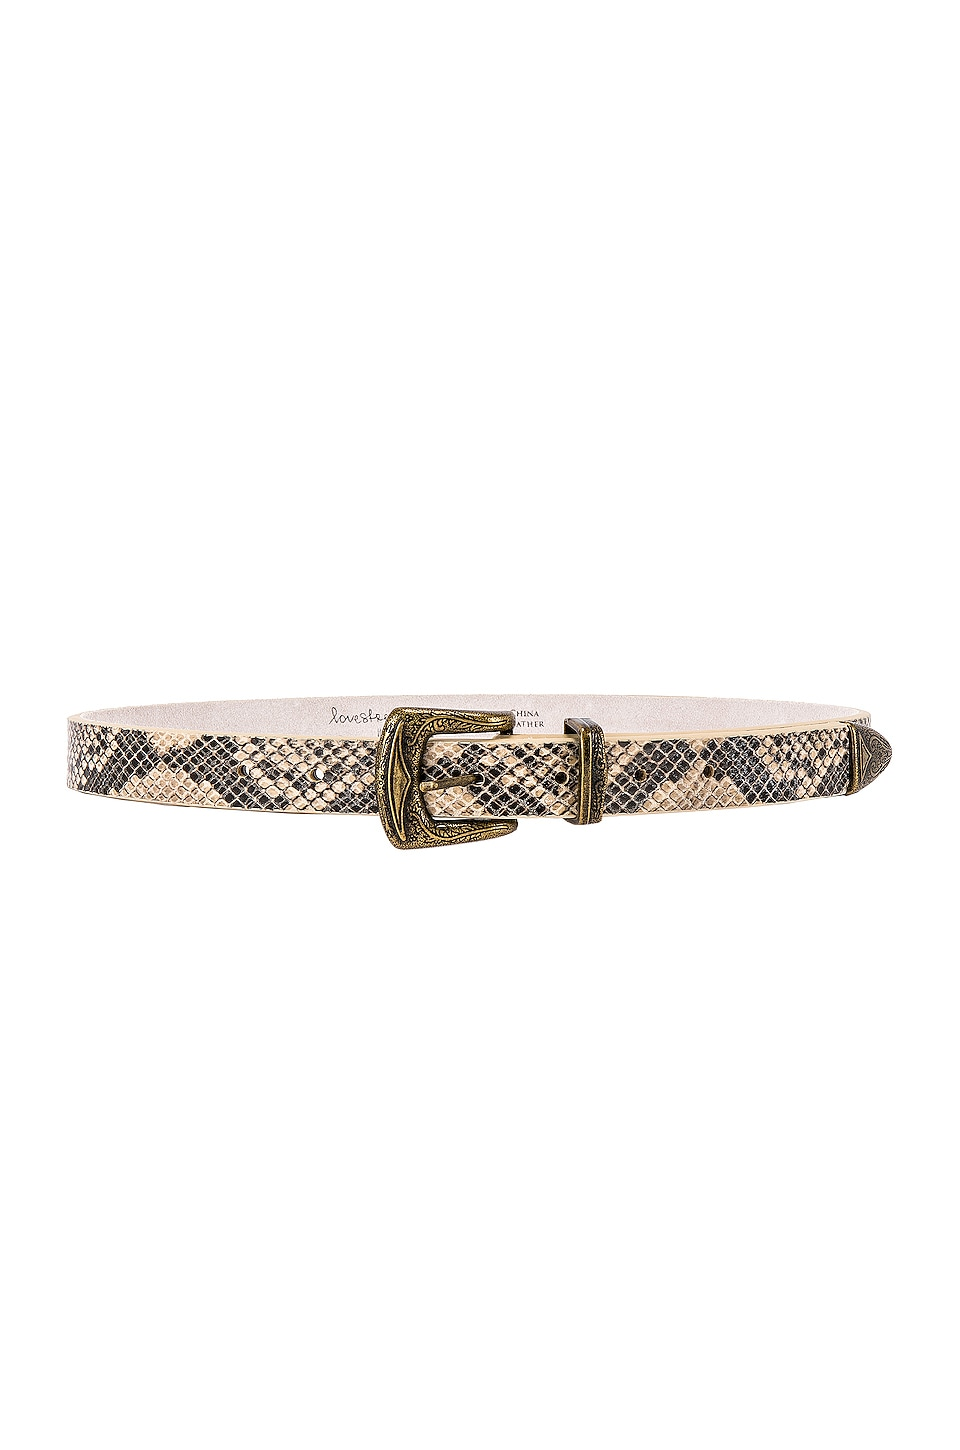 Lovestrength Koda Belt in Beige Multi Snake